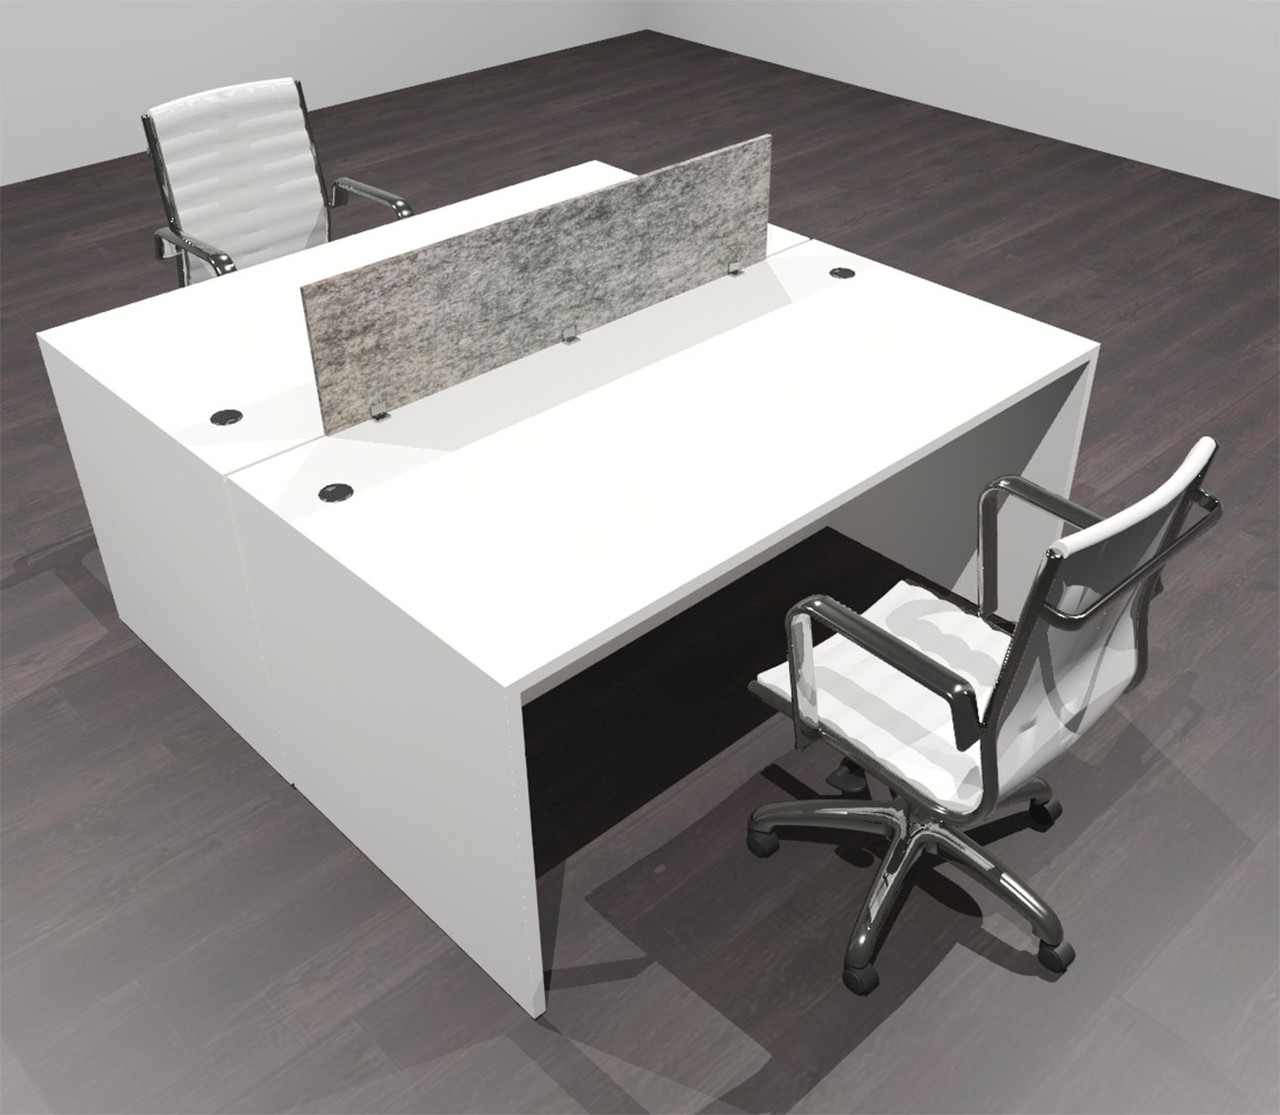 Two Person Modern Accountic Divider Office Workatation Desk Set Of Cpn Fprg1 Color4office